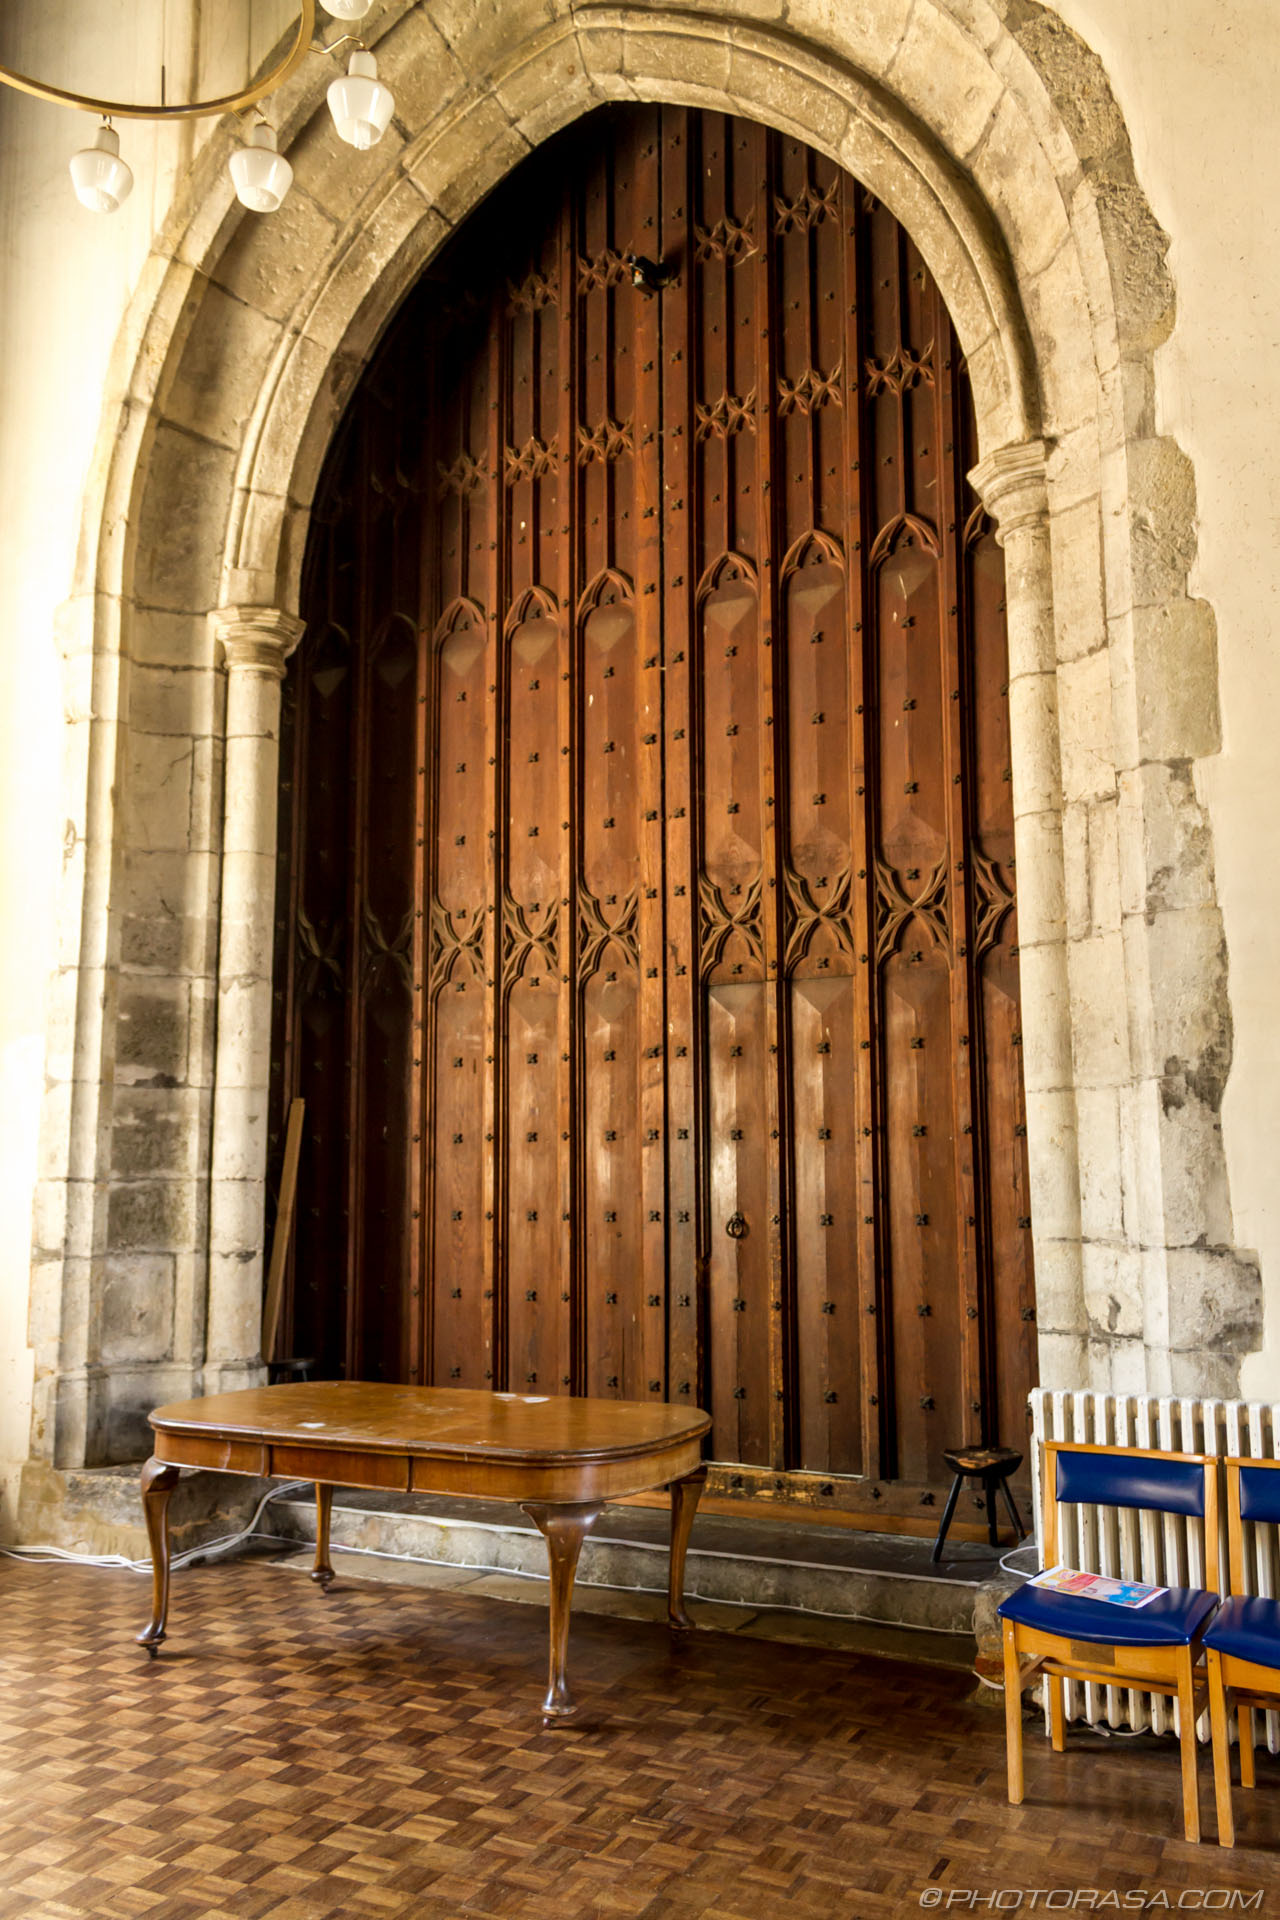 http://photorasa.com/st-marys-church-in-lenham/massive-wooden-church-double-doors/